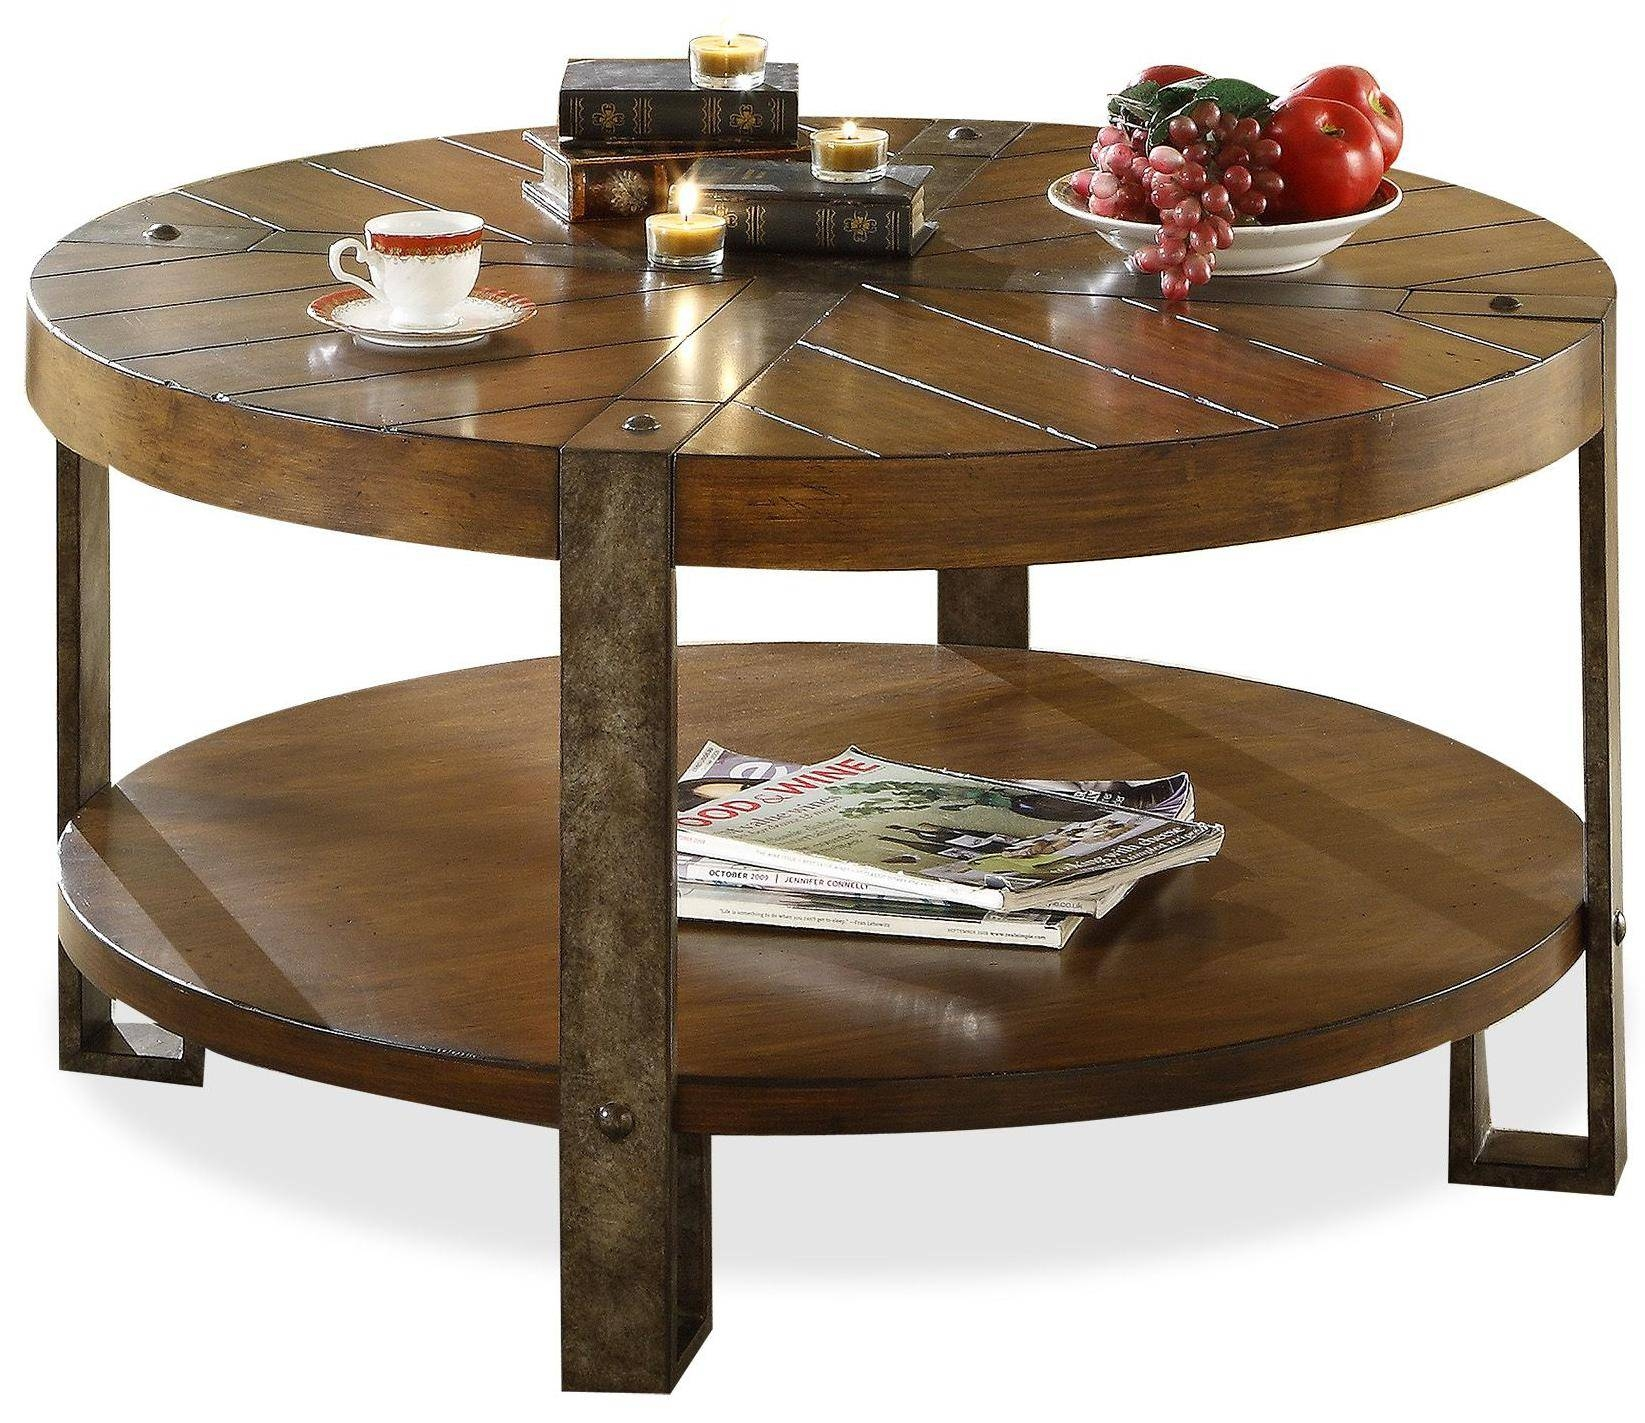 Awesome Round Coffee Tables With Storage | Homesfeed With Regard To Round Coffee Tables With Storages (Photo 1 of 30)